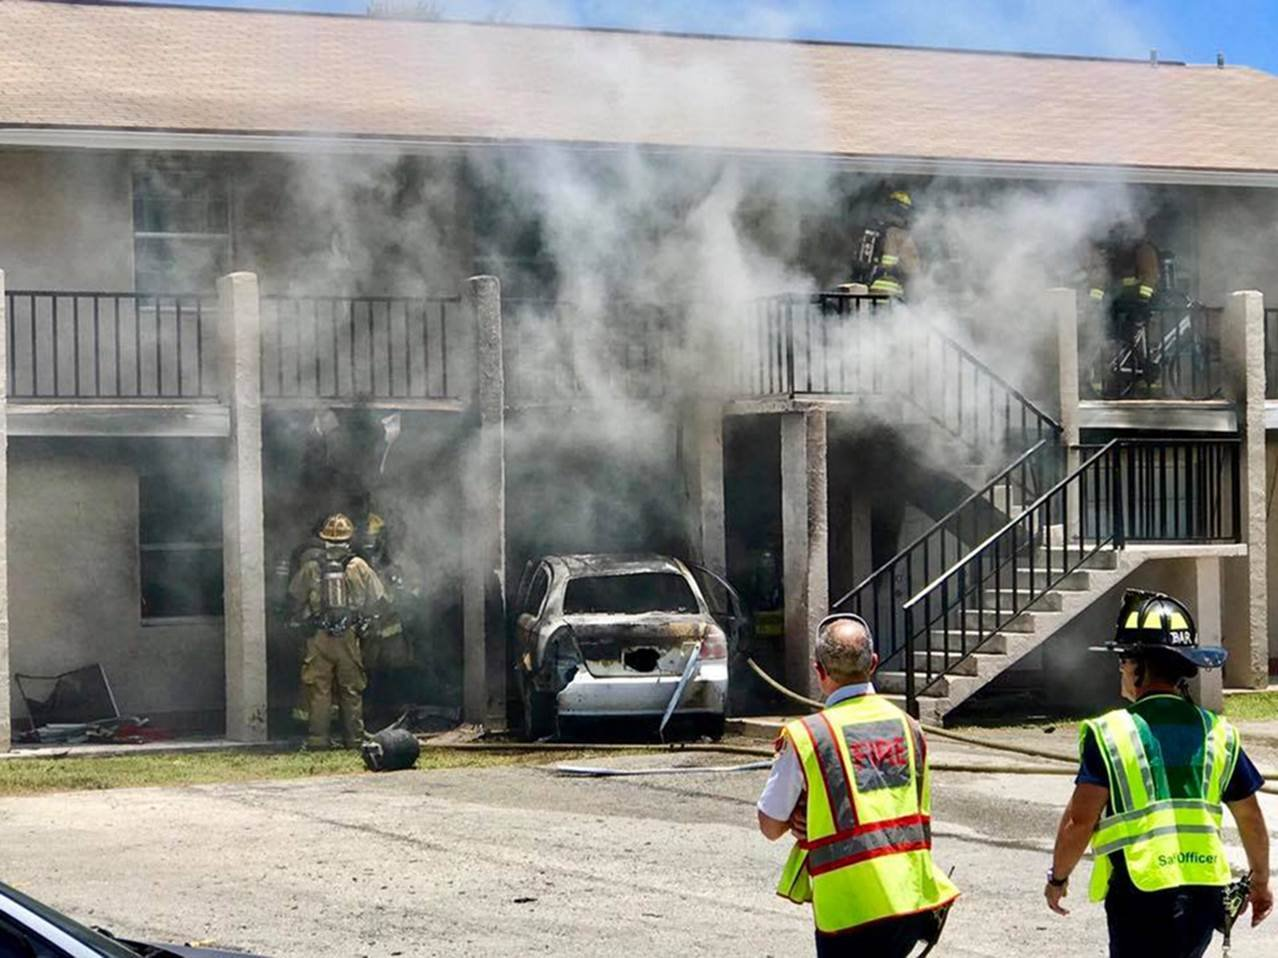 Florida Man Loaded Propane Tanks in Car, Drove Into Building